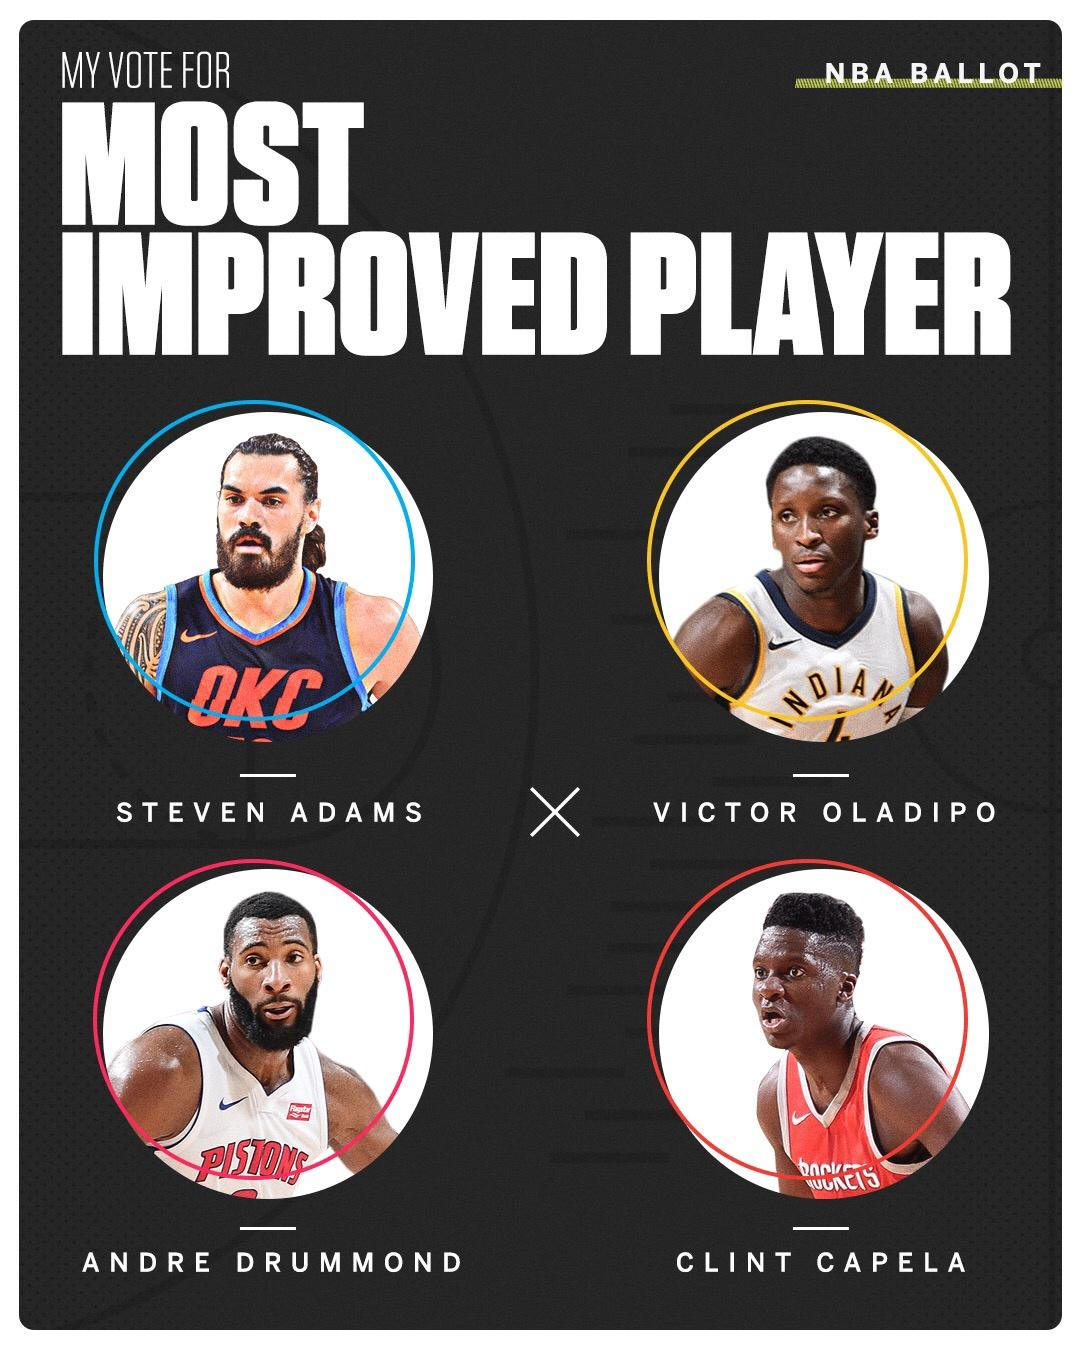 Whose game grew the most this year? https://t.co/3FqjONvPl6